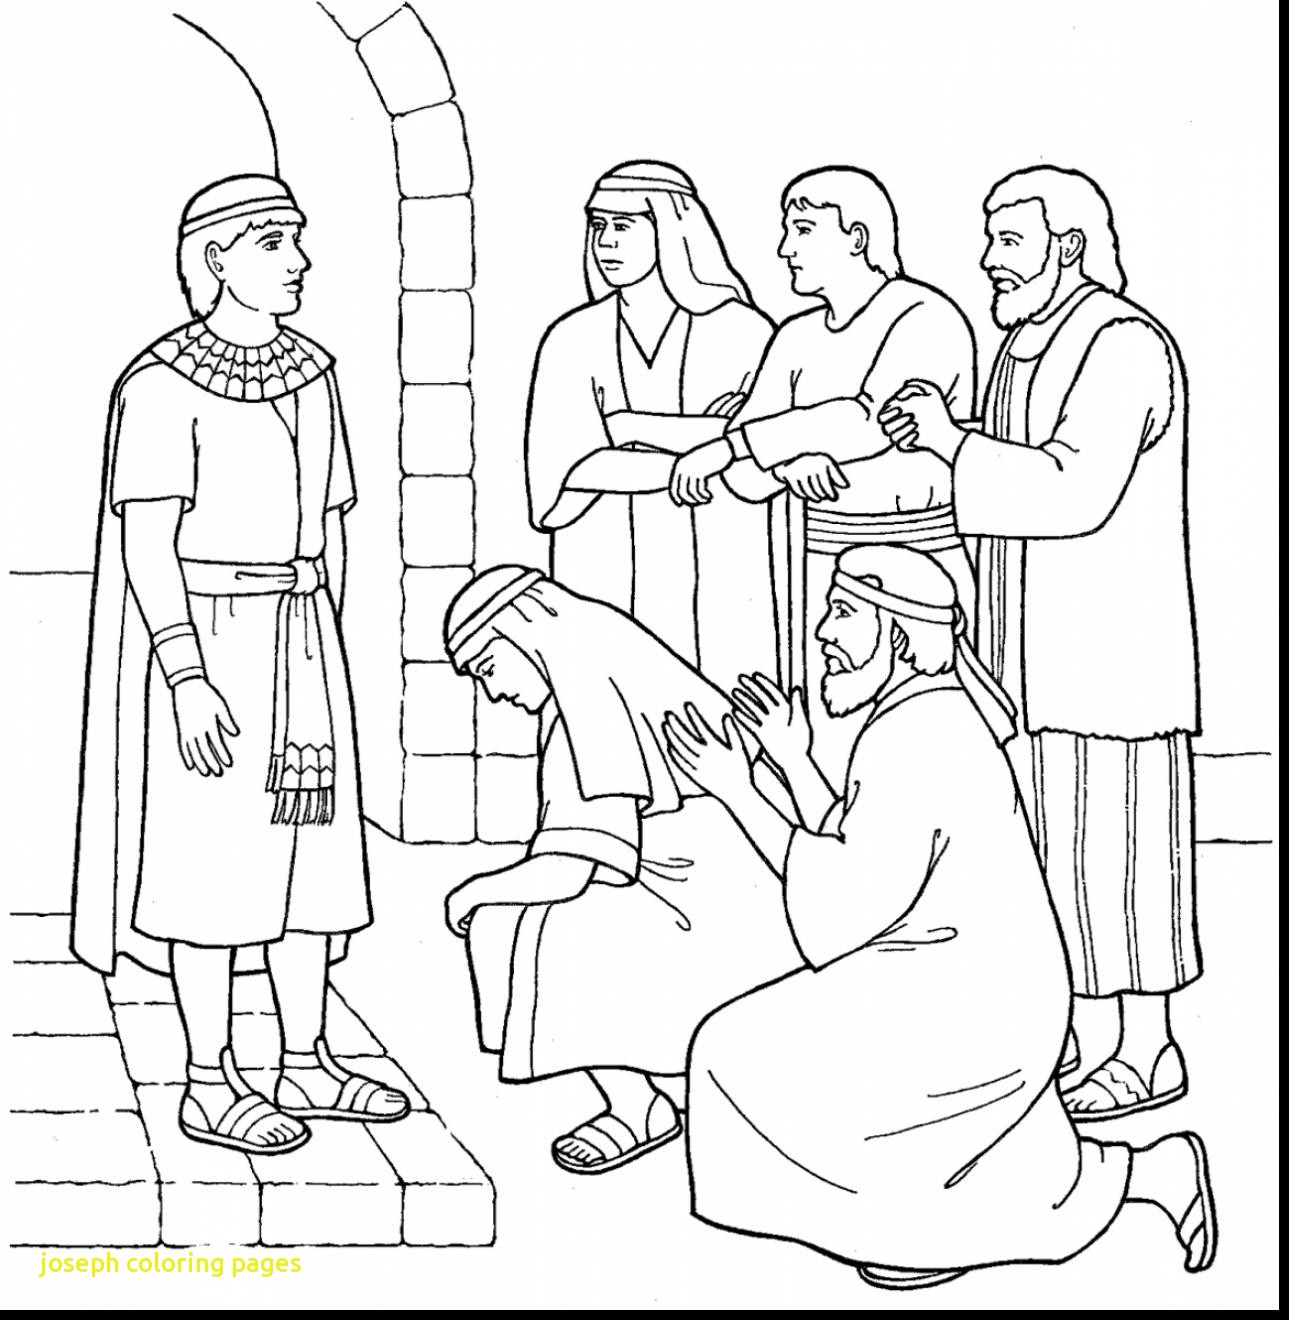 1289x1320 Joseph Coloring Pages With Joseph Bible Story Coloring Pages